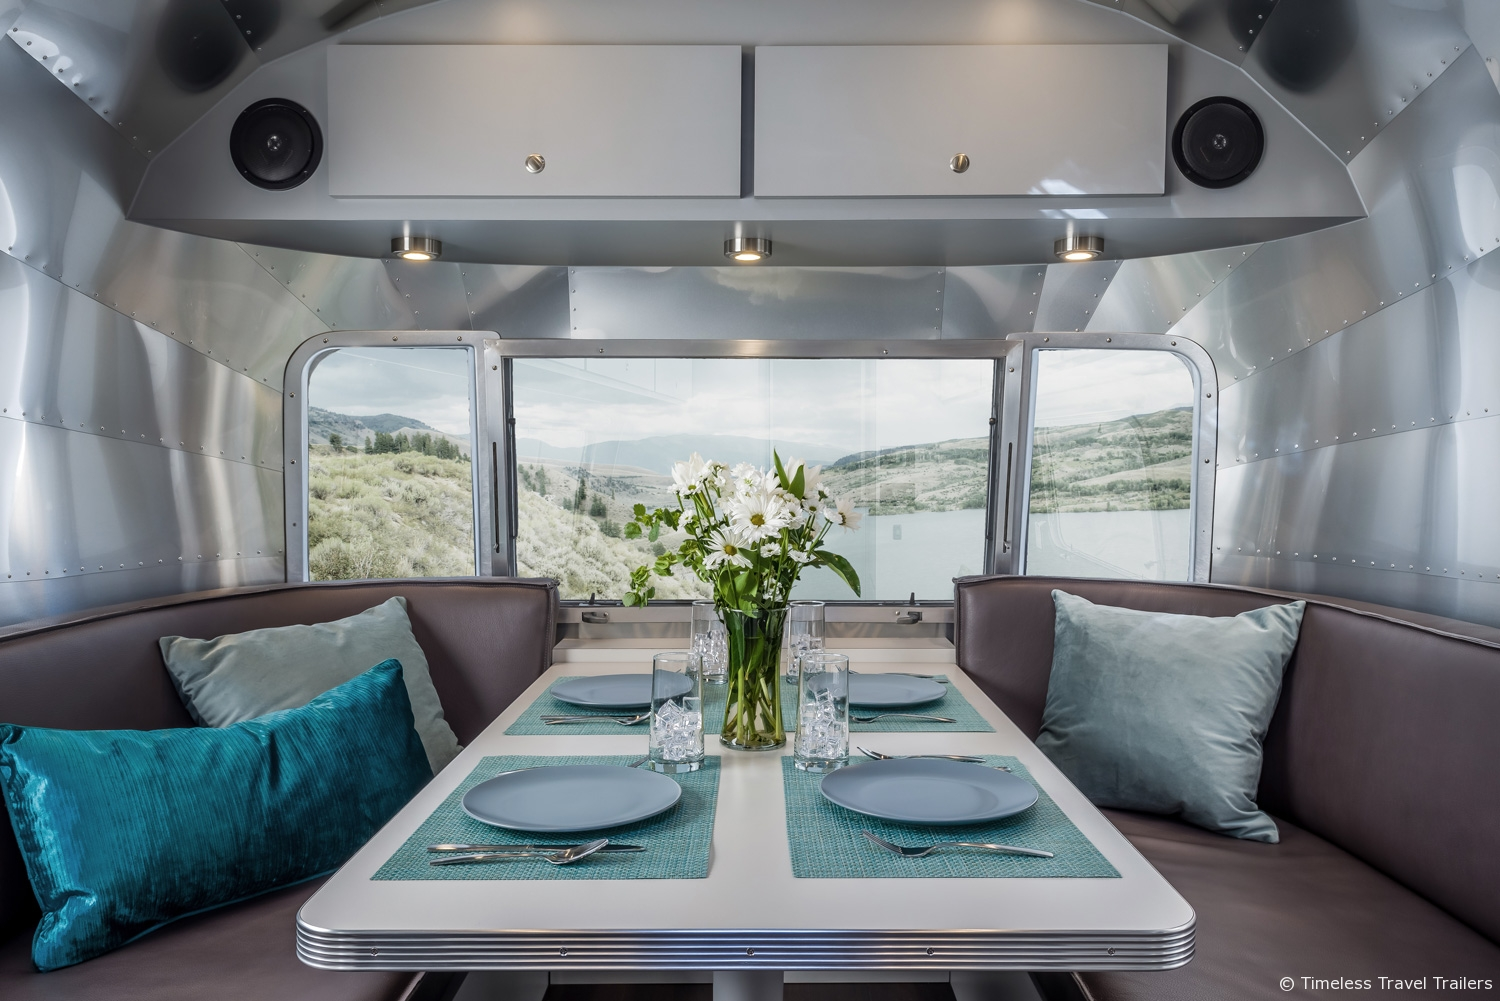 Timeless Travel Trailers - Airstream's most experienced Authorized